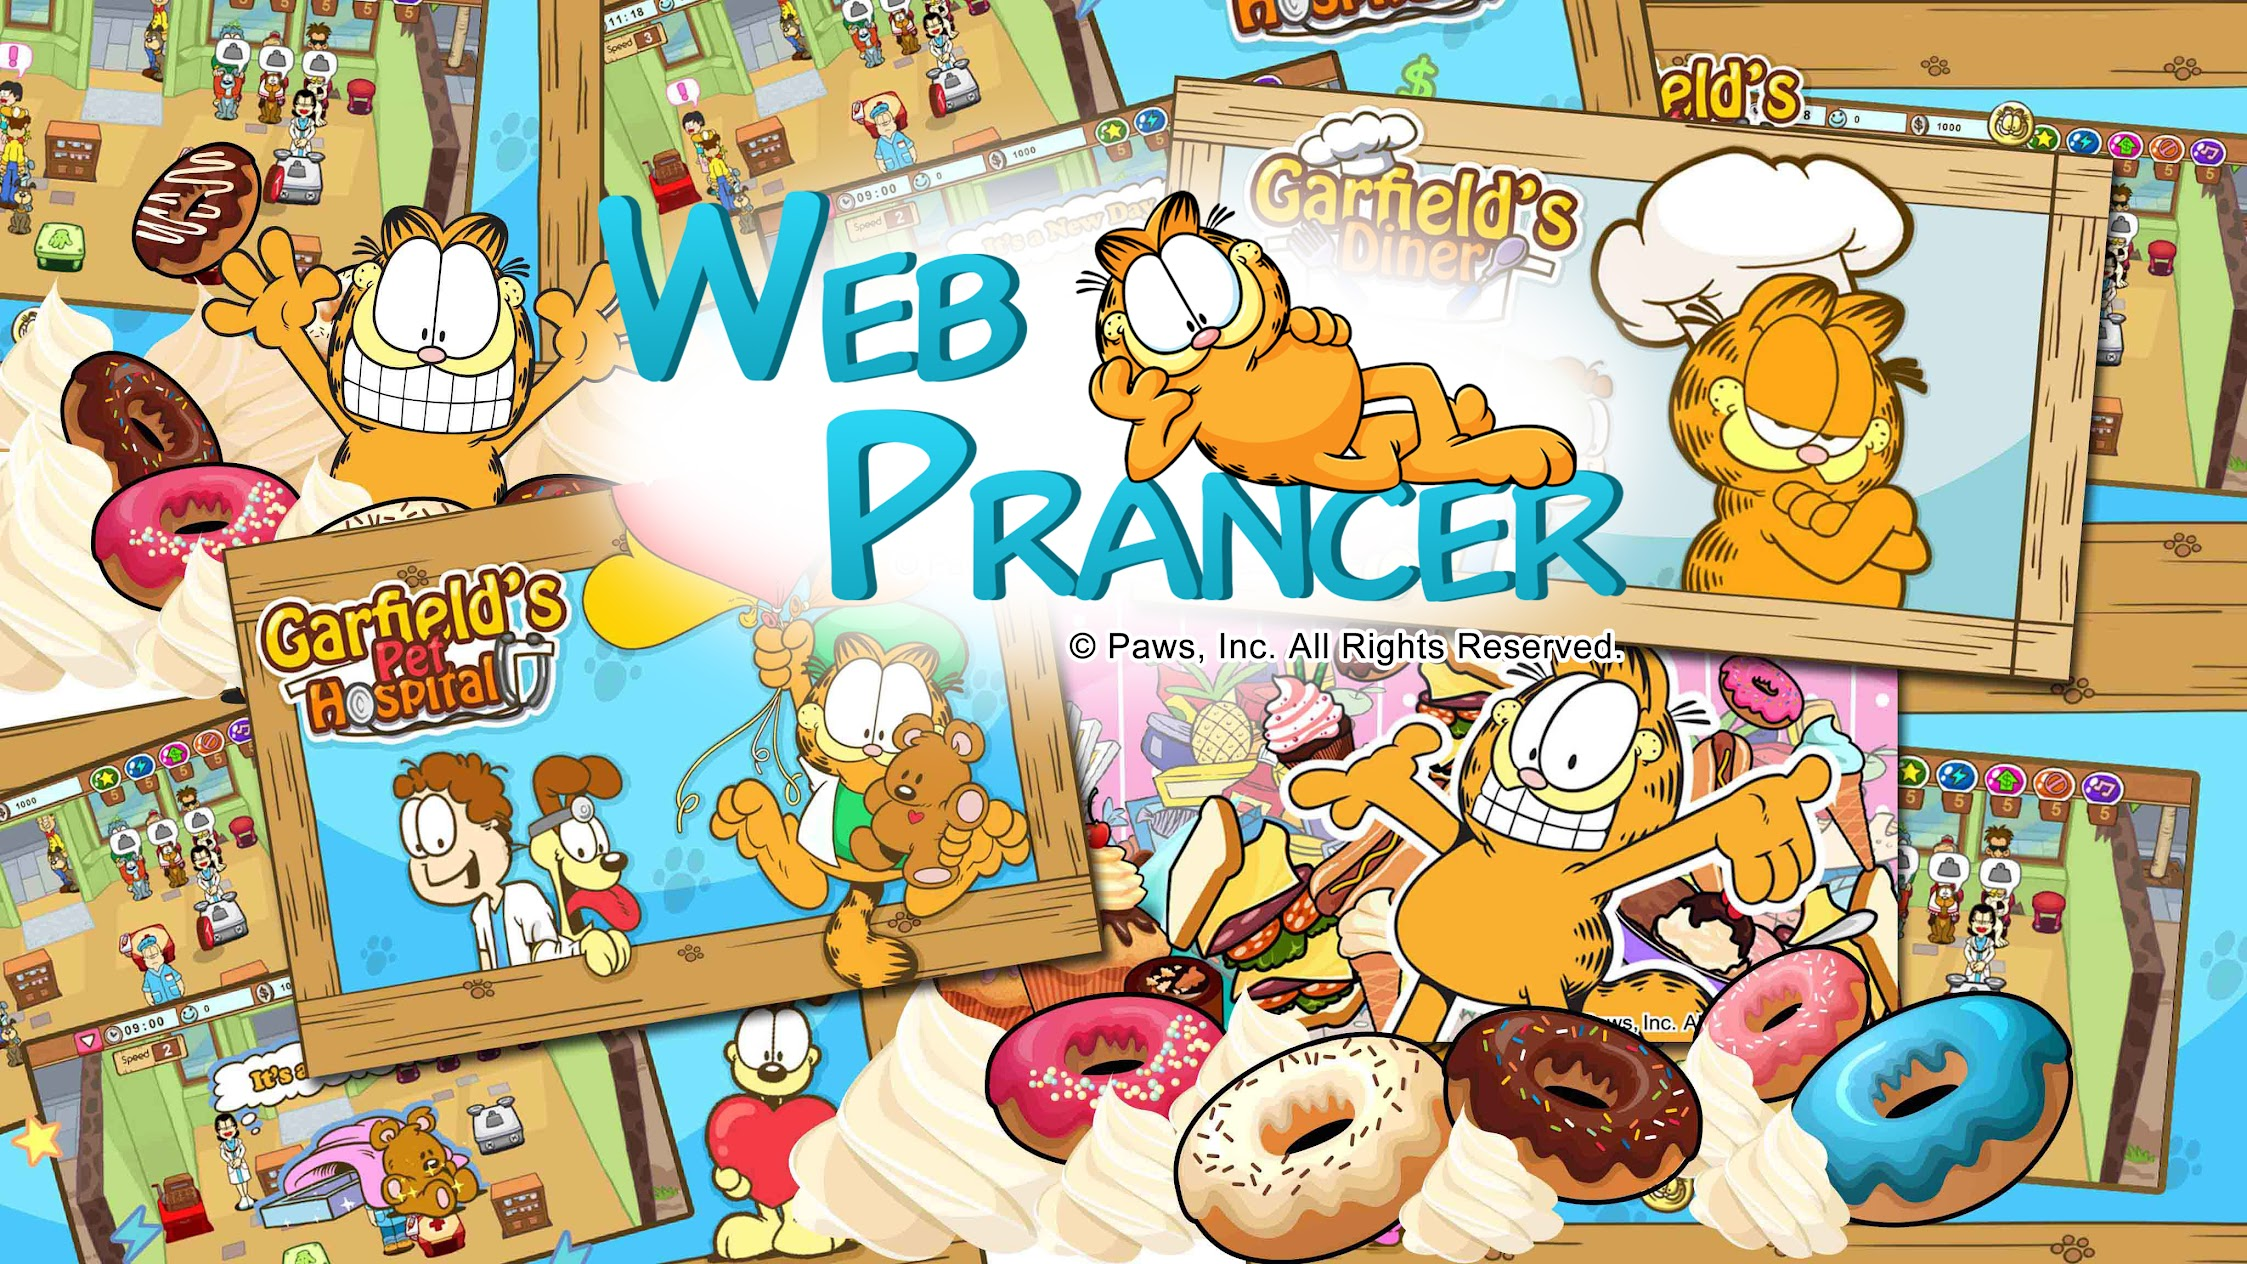 Web Prancer